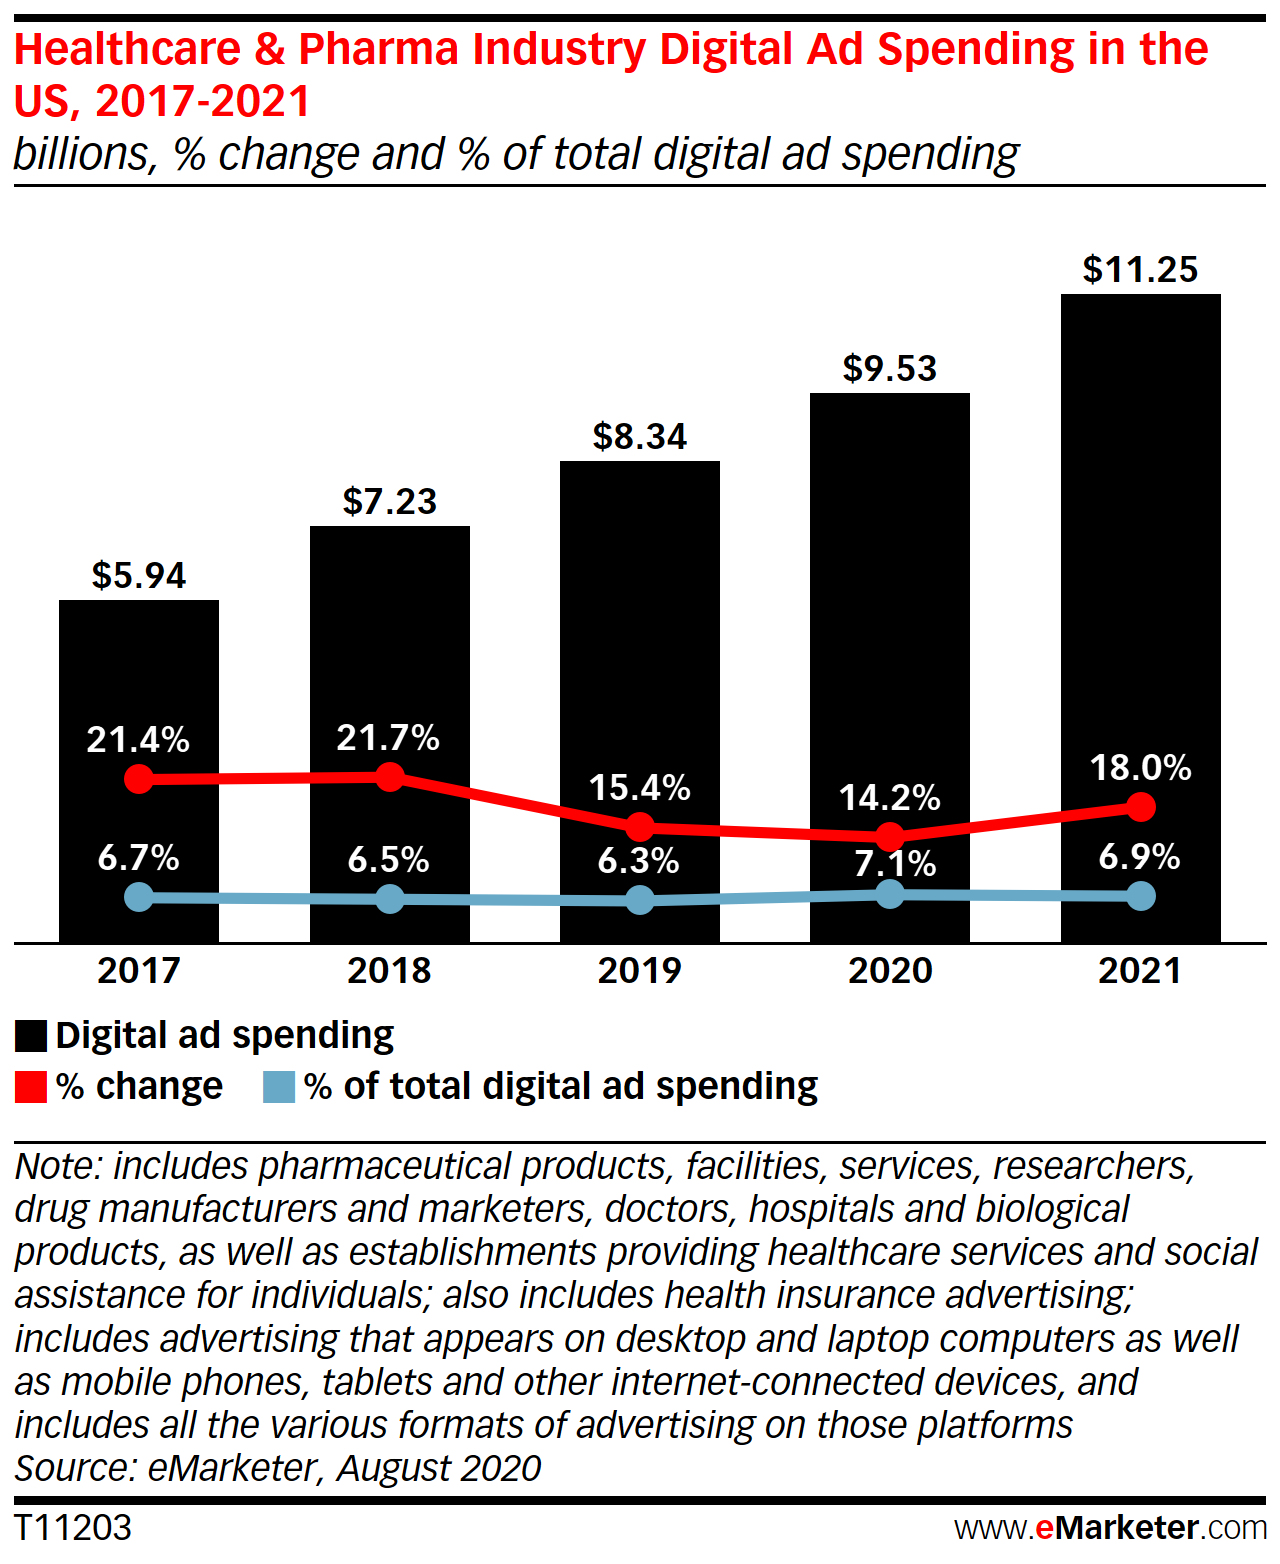 Healthcare & Pharma Industry Digital Ad Spending in the US, 2017-2021 (billions, % change, and % of total digital ad spending)